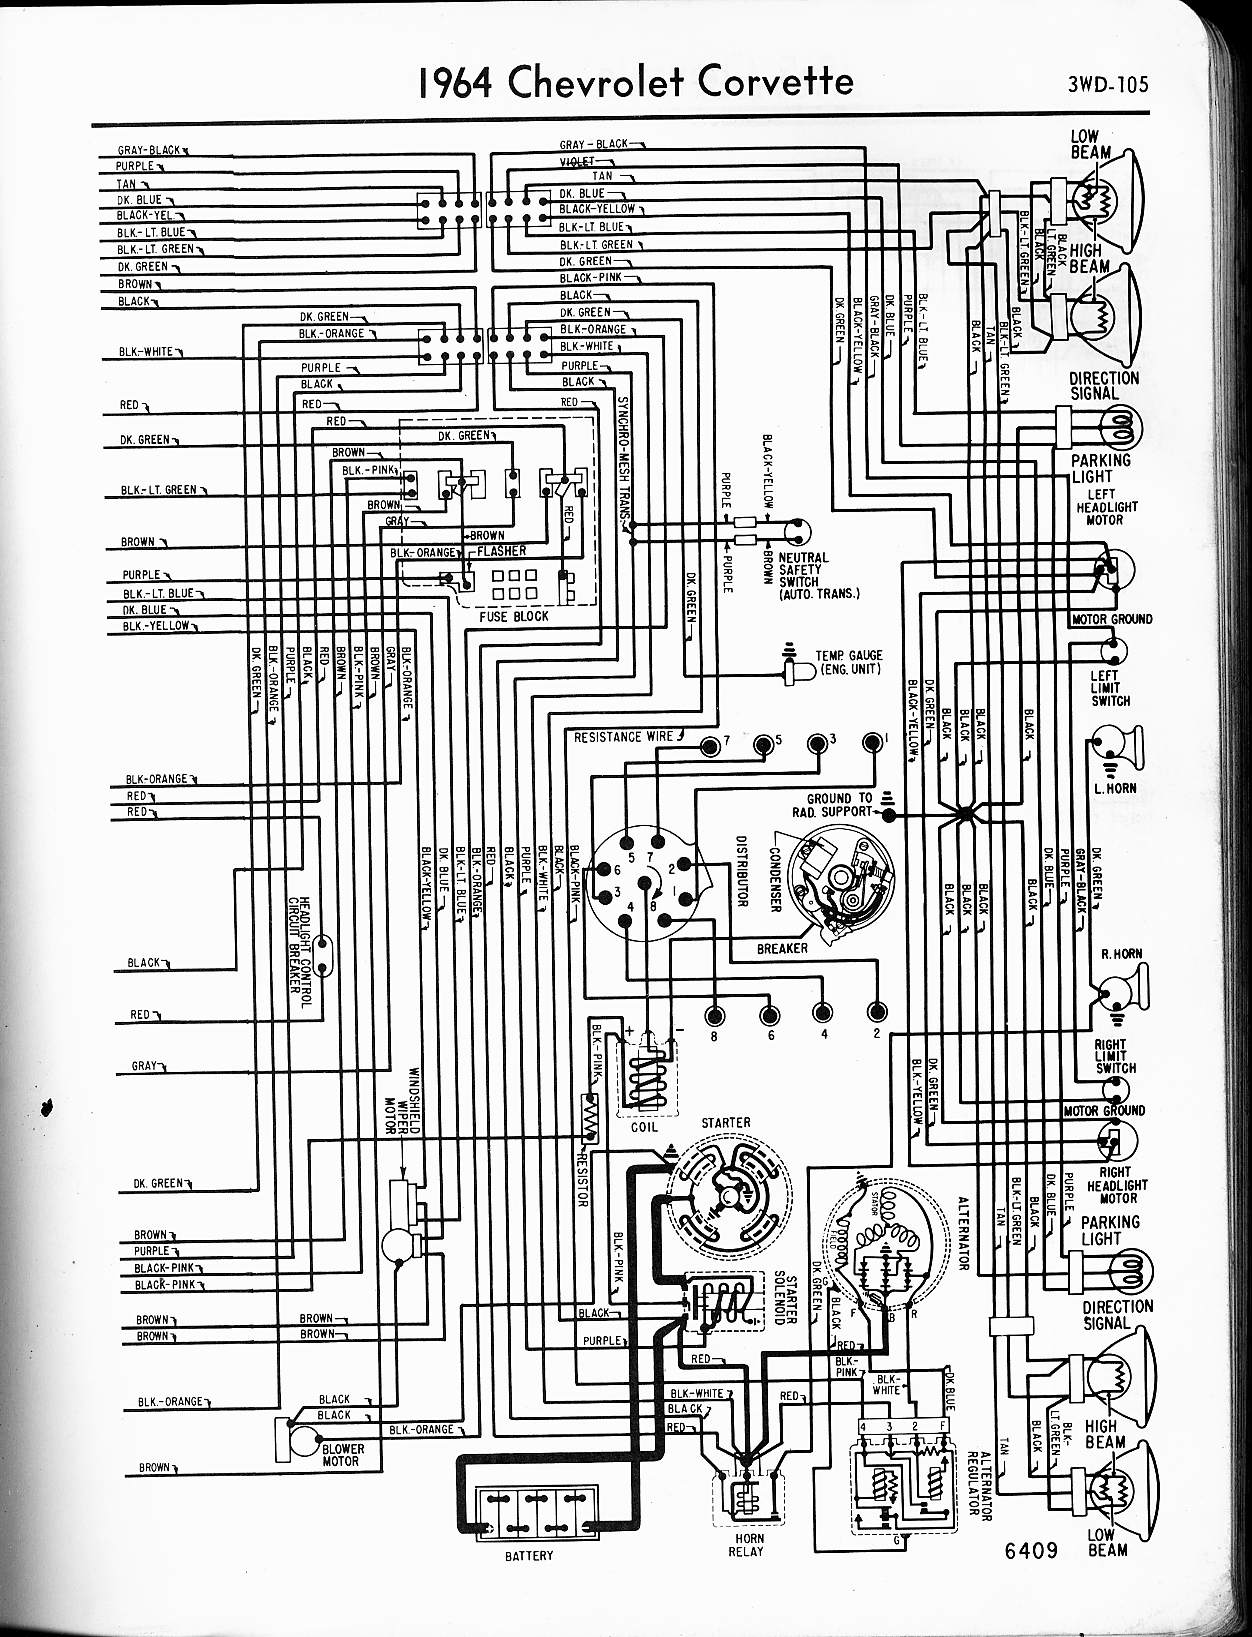 1964 impala alternator wiring diagram 37 wiring diagram 64 falcon wiring  diagram 64 c10 wiring diagram